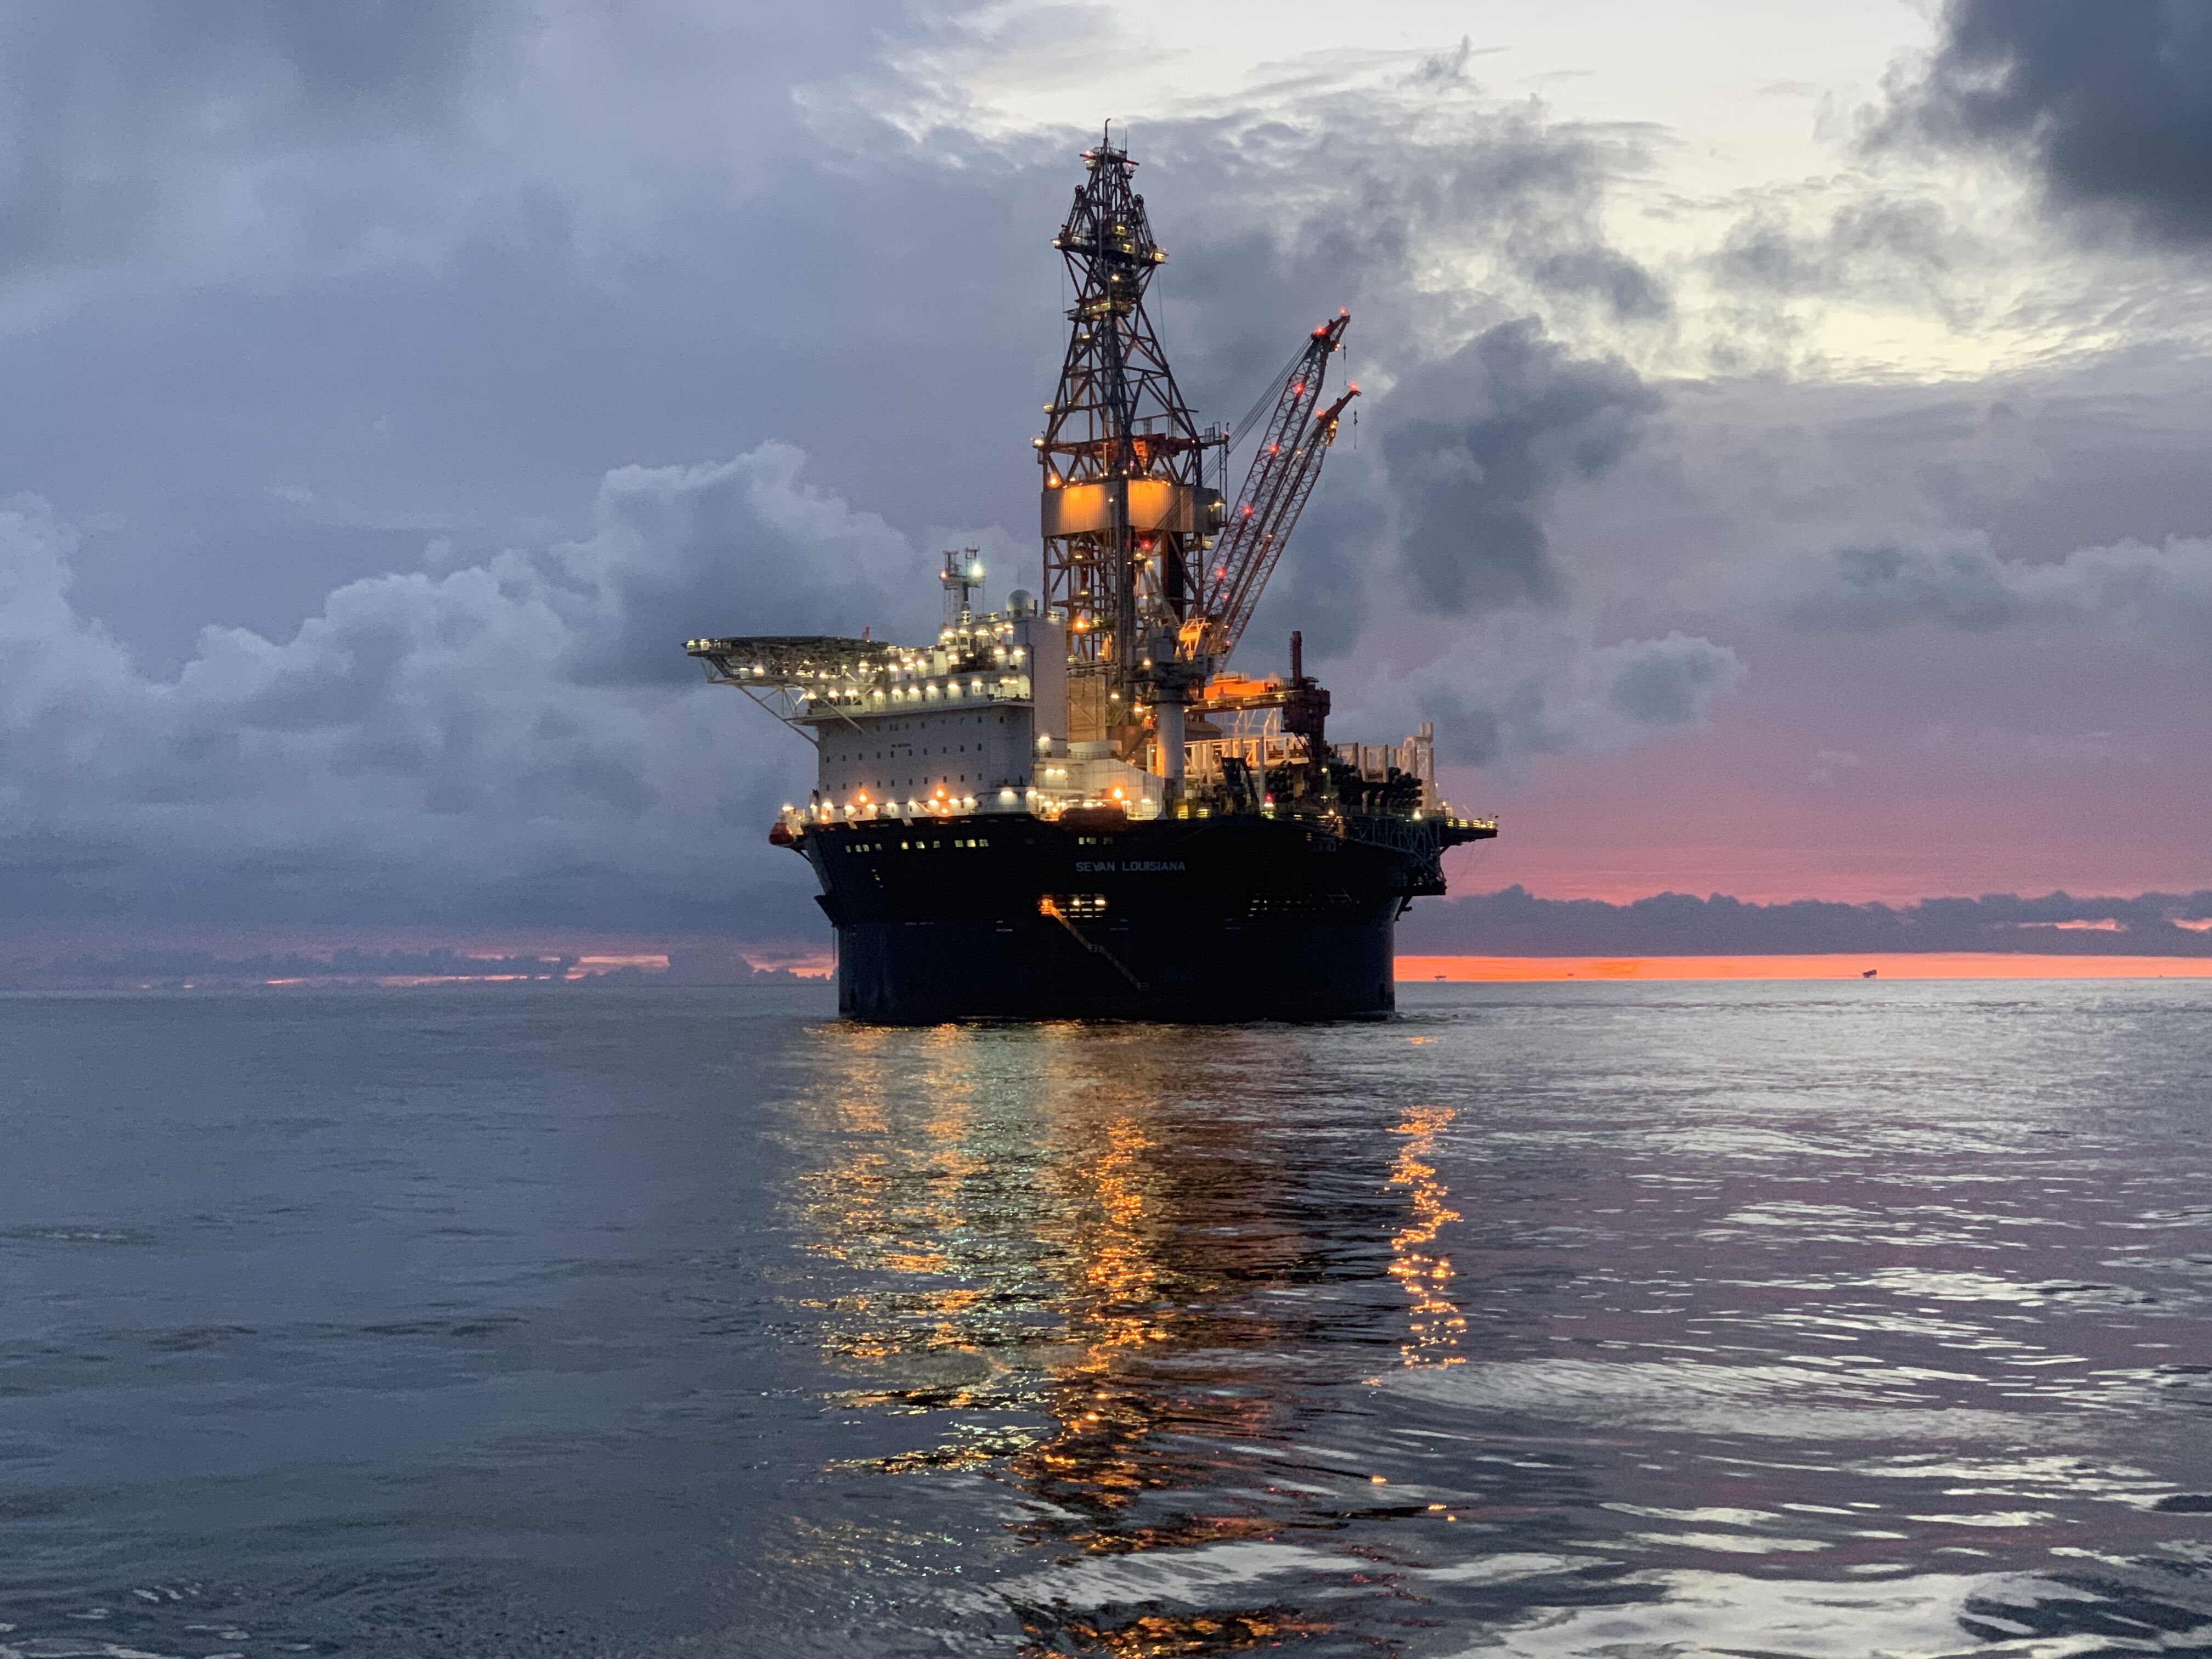 The Sevan Louisiana, built in 2013, is a sixth-generation Sevan 650 DP semisubmersible drilling rig. (Source: Seadrill)